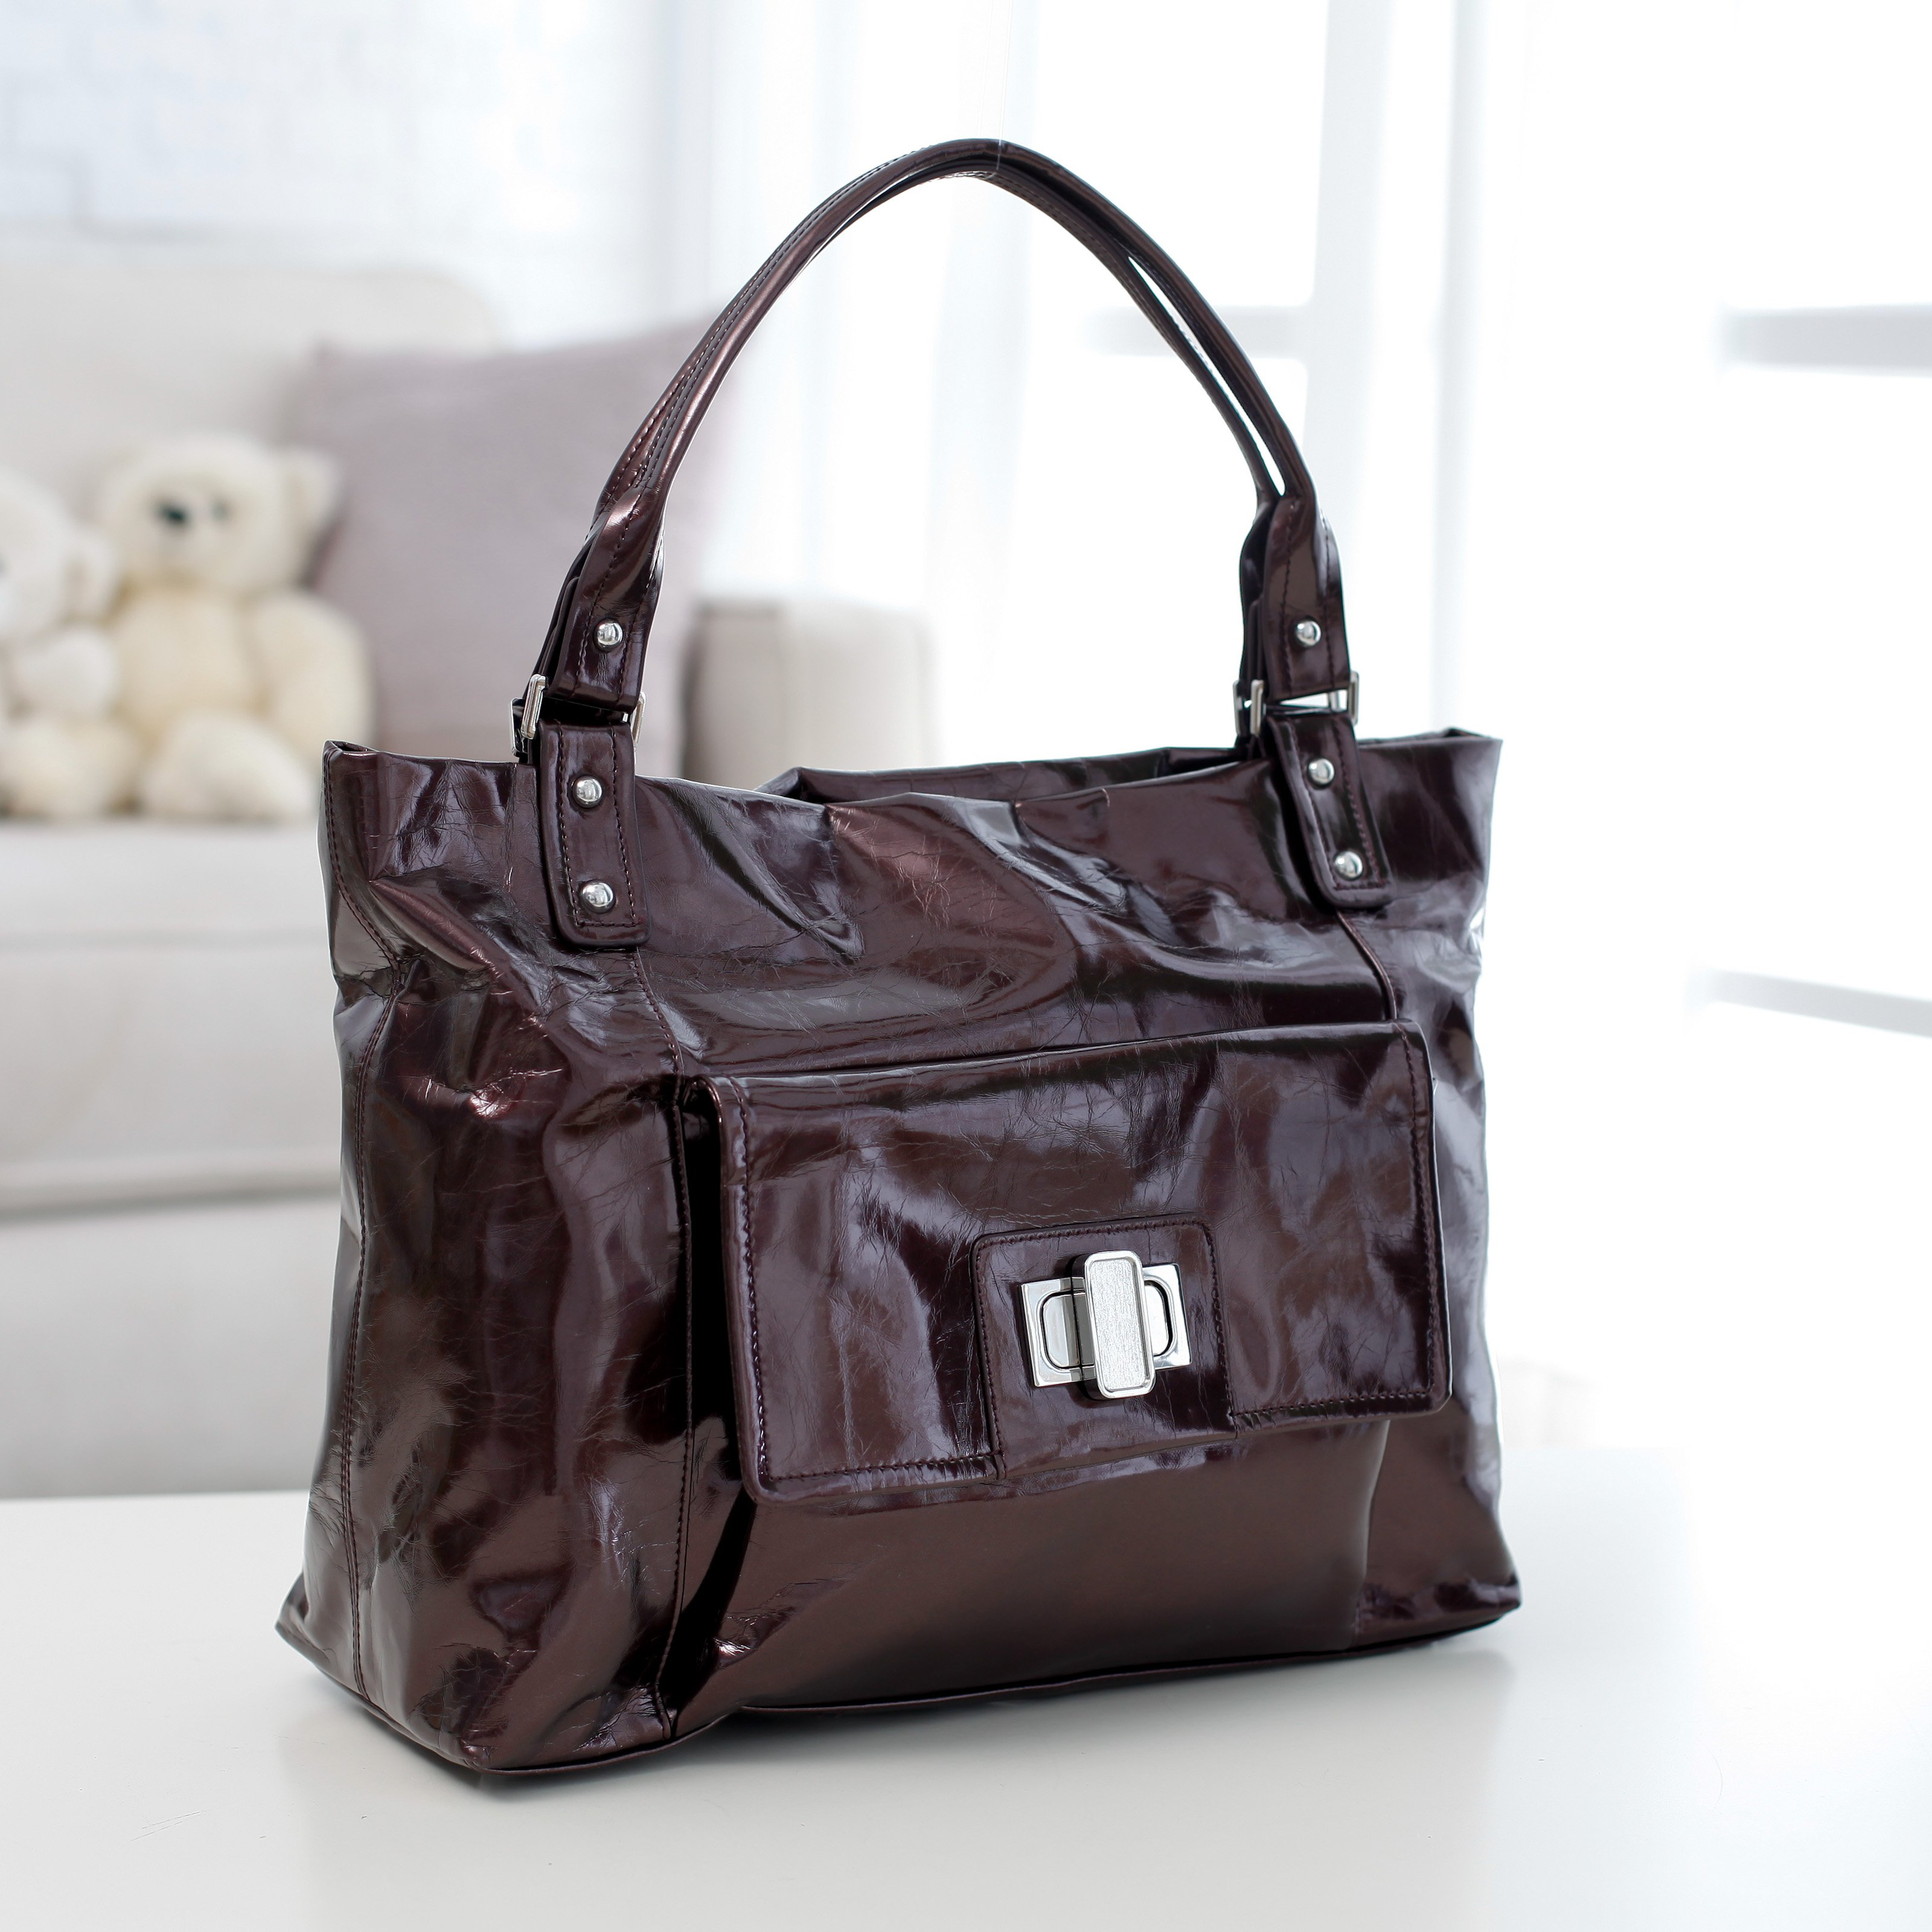 Amy Michelle Cosmo Go Bebe Diaper Bag - Chocolate